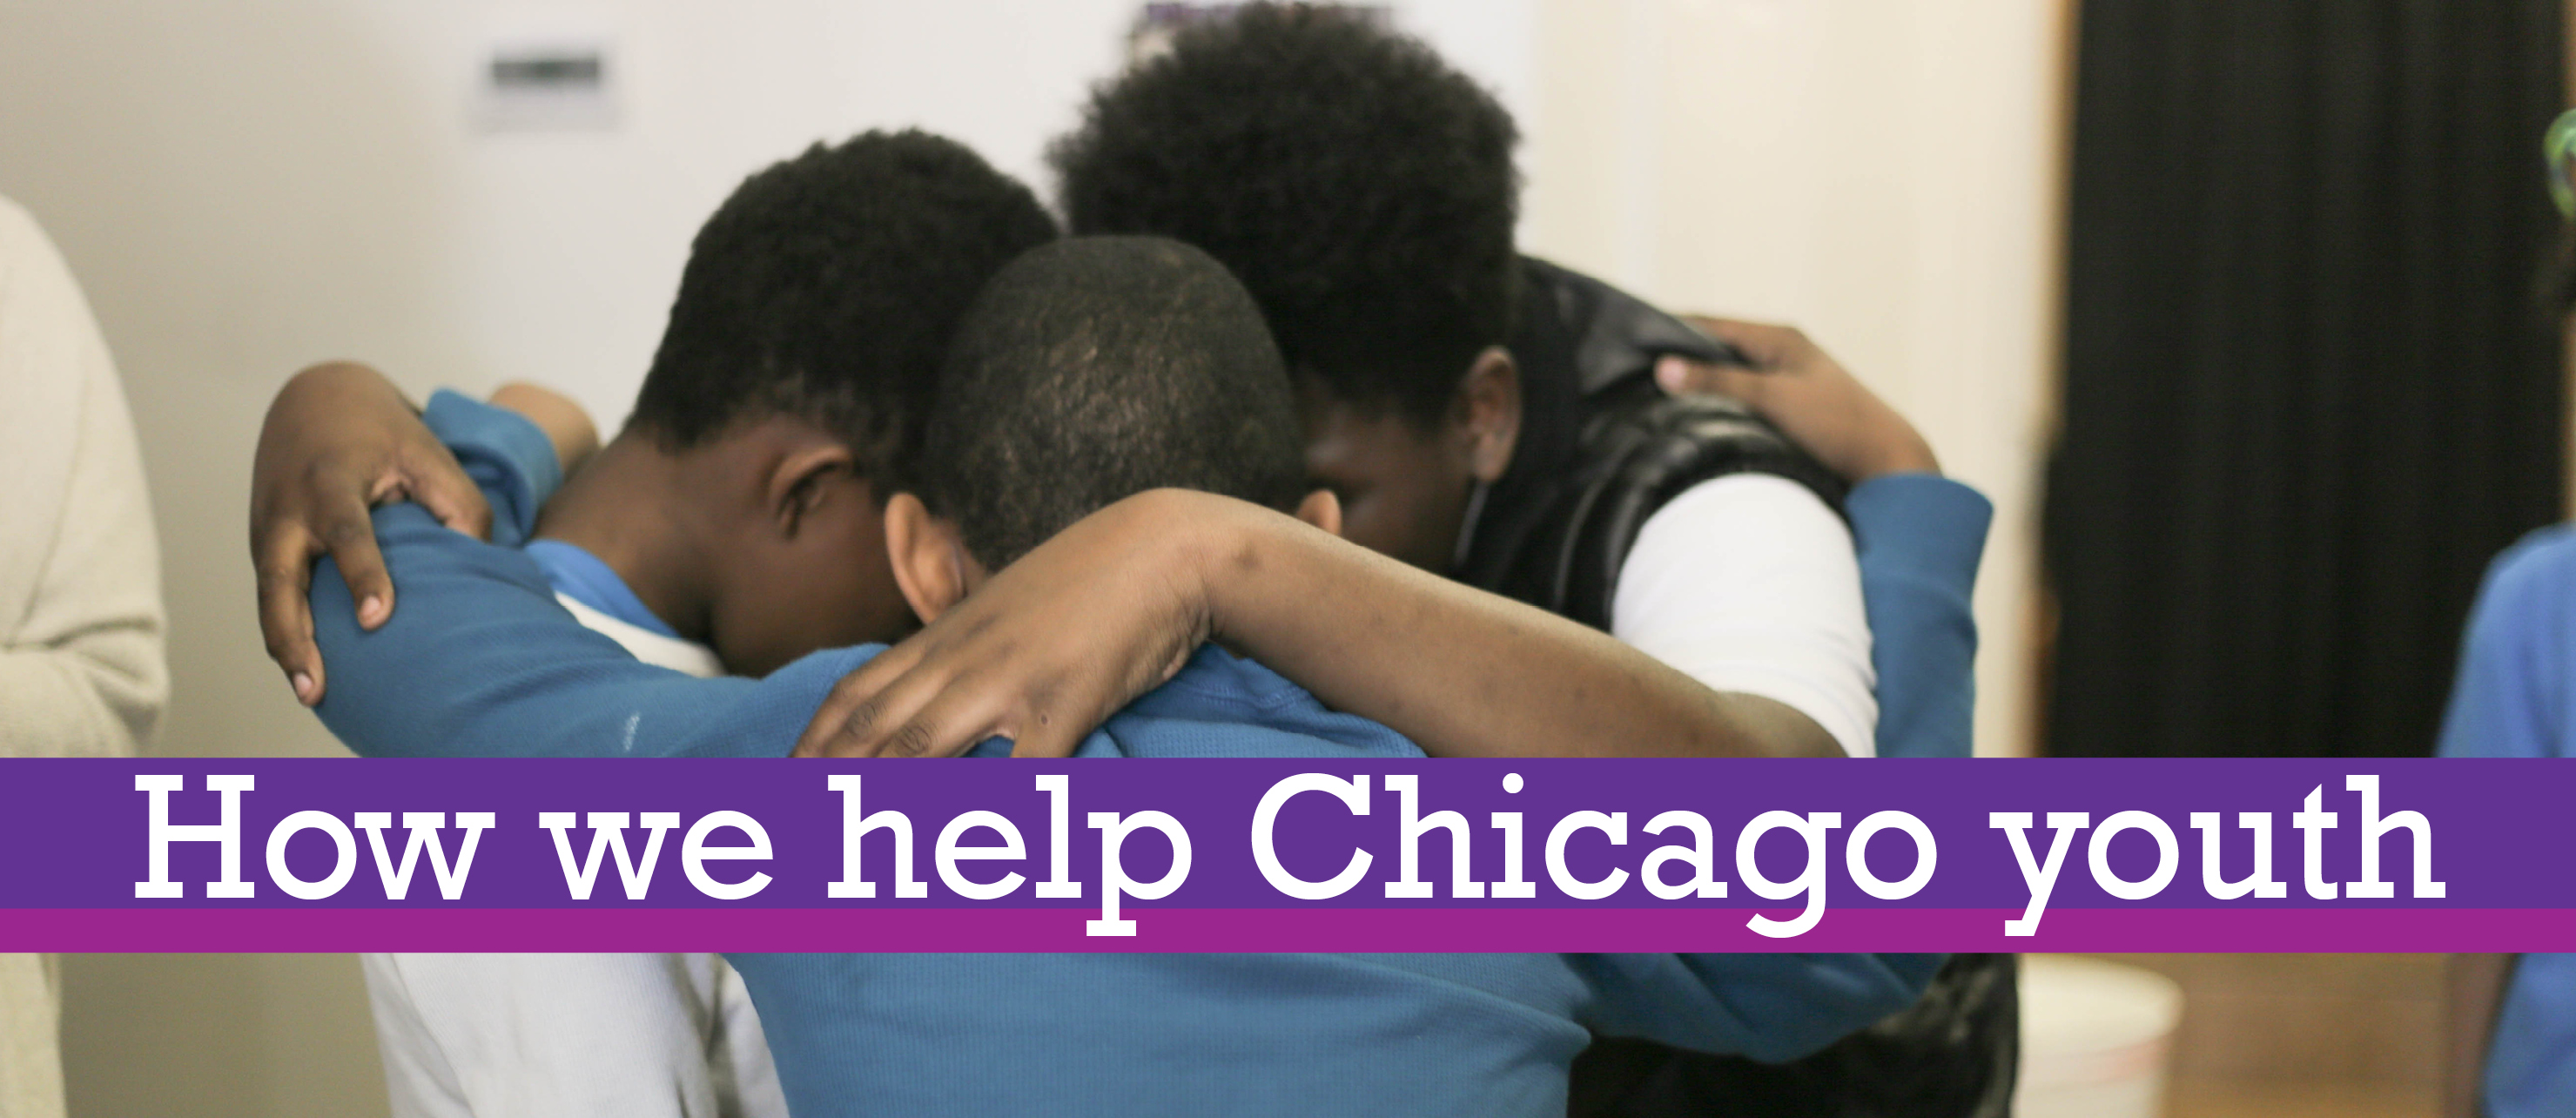 Kaleidoscope 4 Kids - Homepage Slider - Programs Services Children Youth Chicago